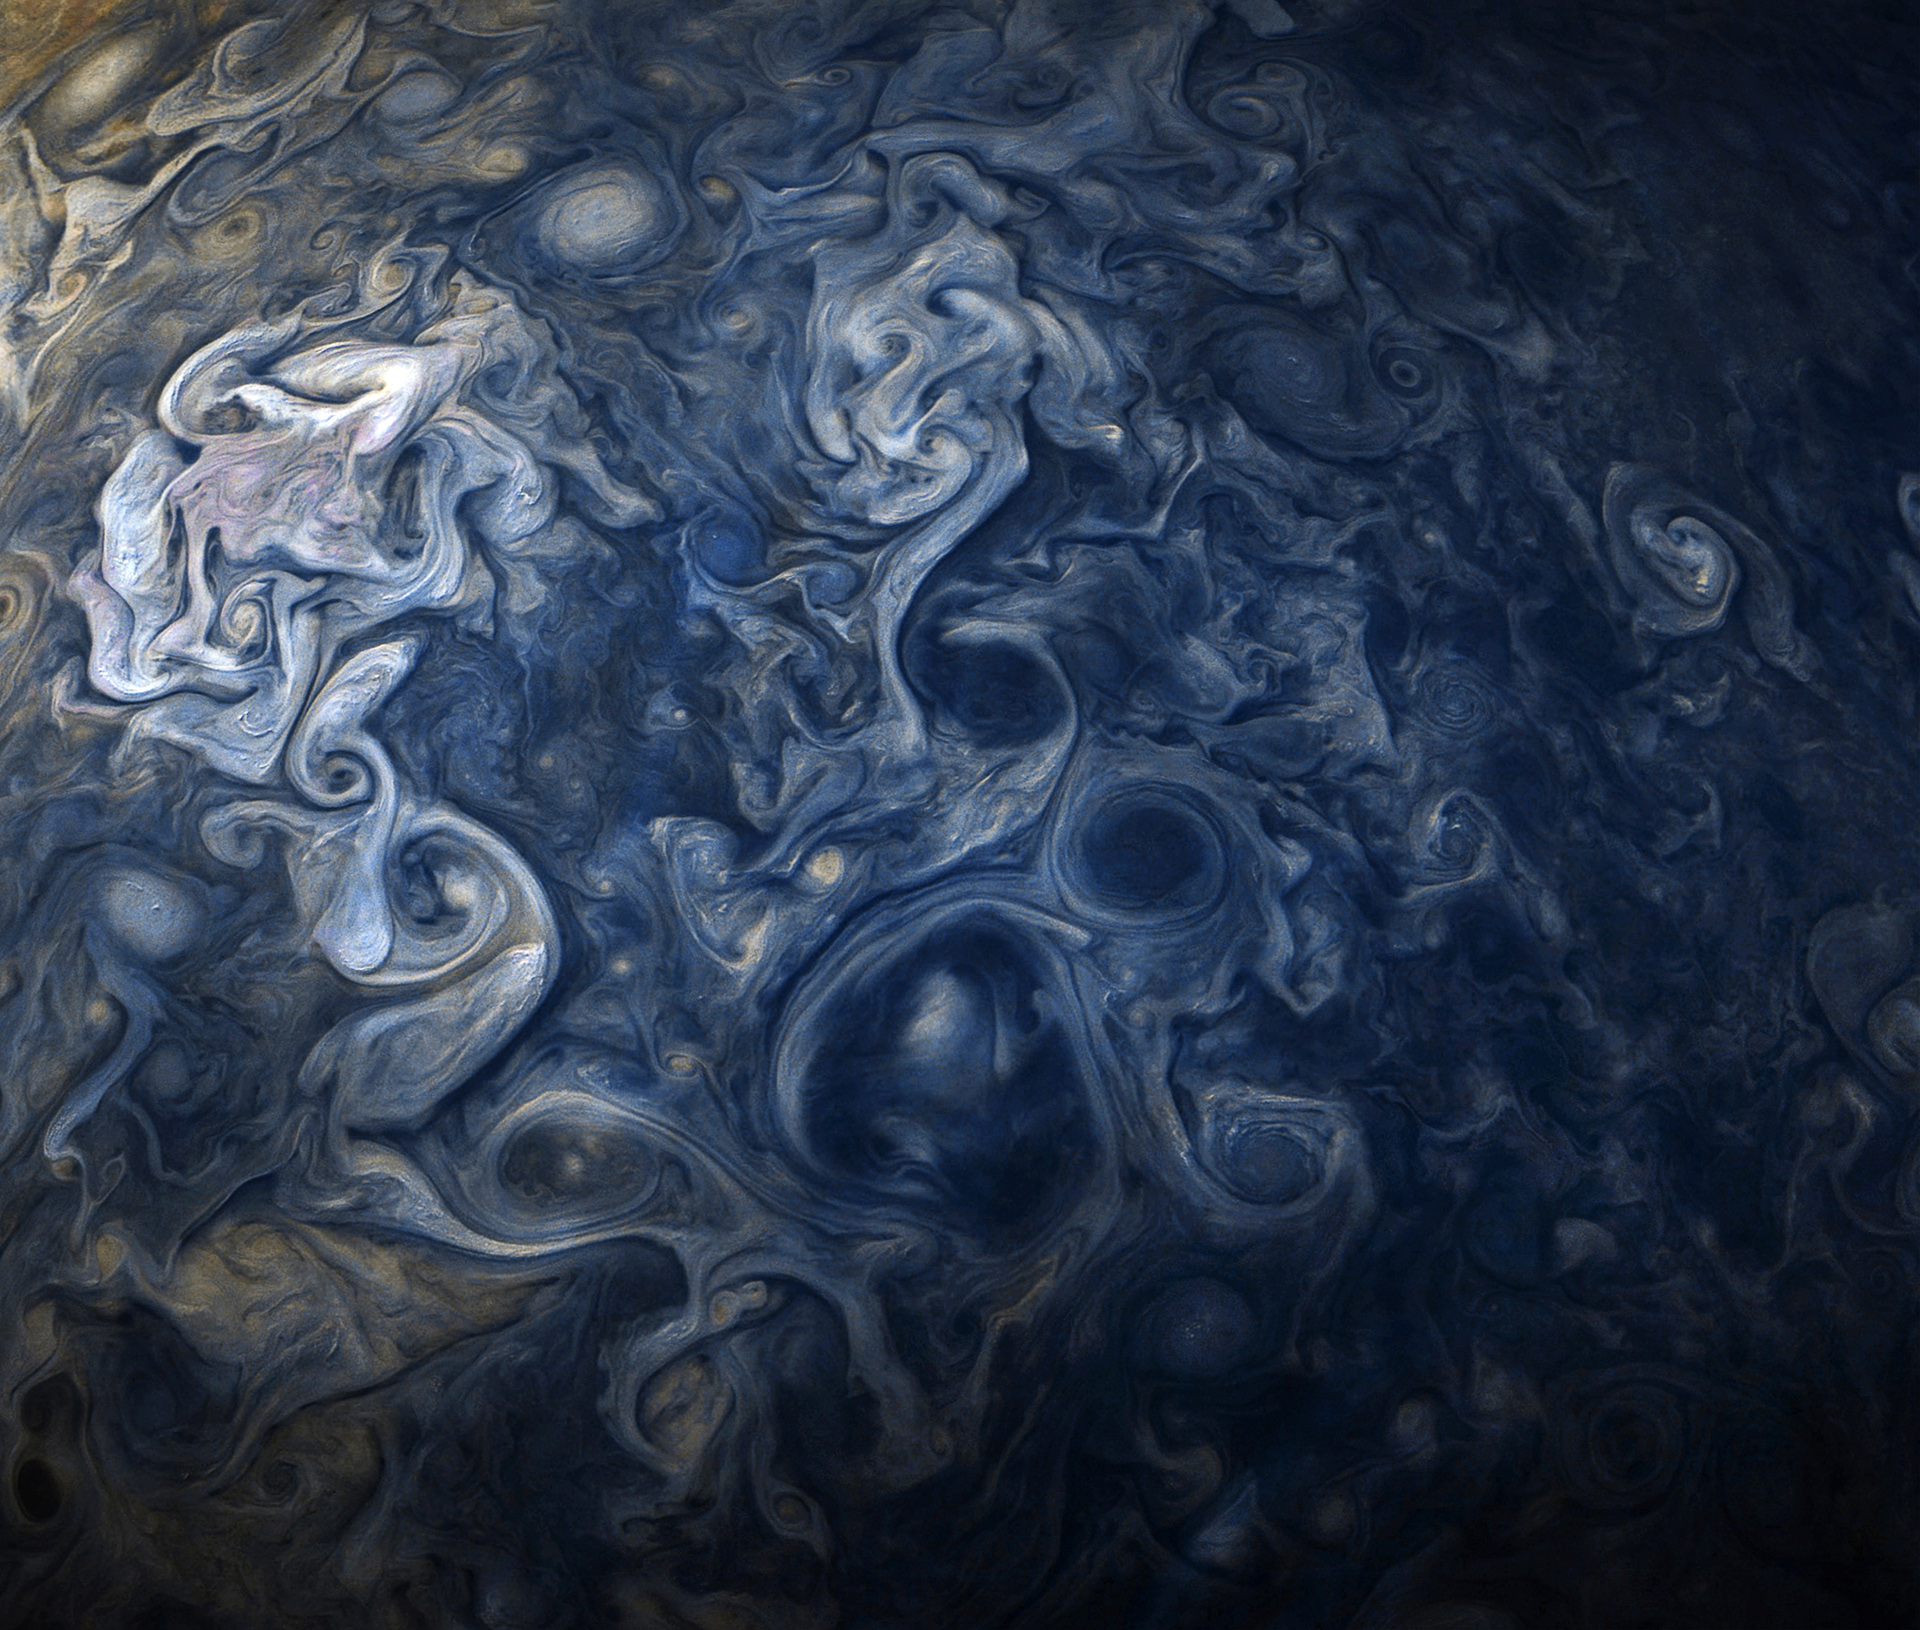 The Spectacular Blues of Jupiter Captured by Juno: Jovian clouds in striking hues